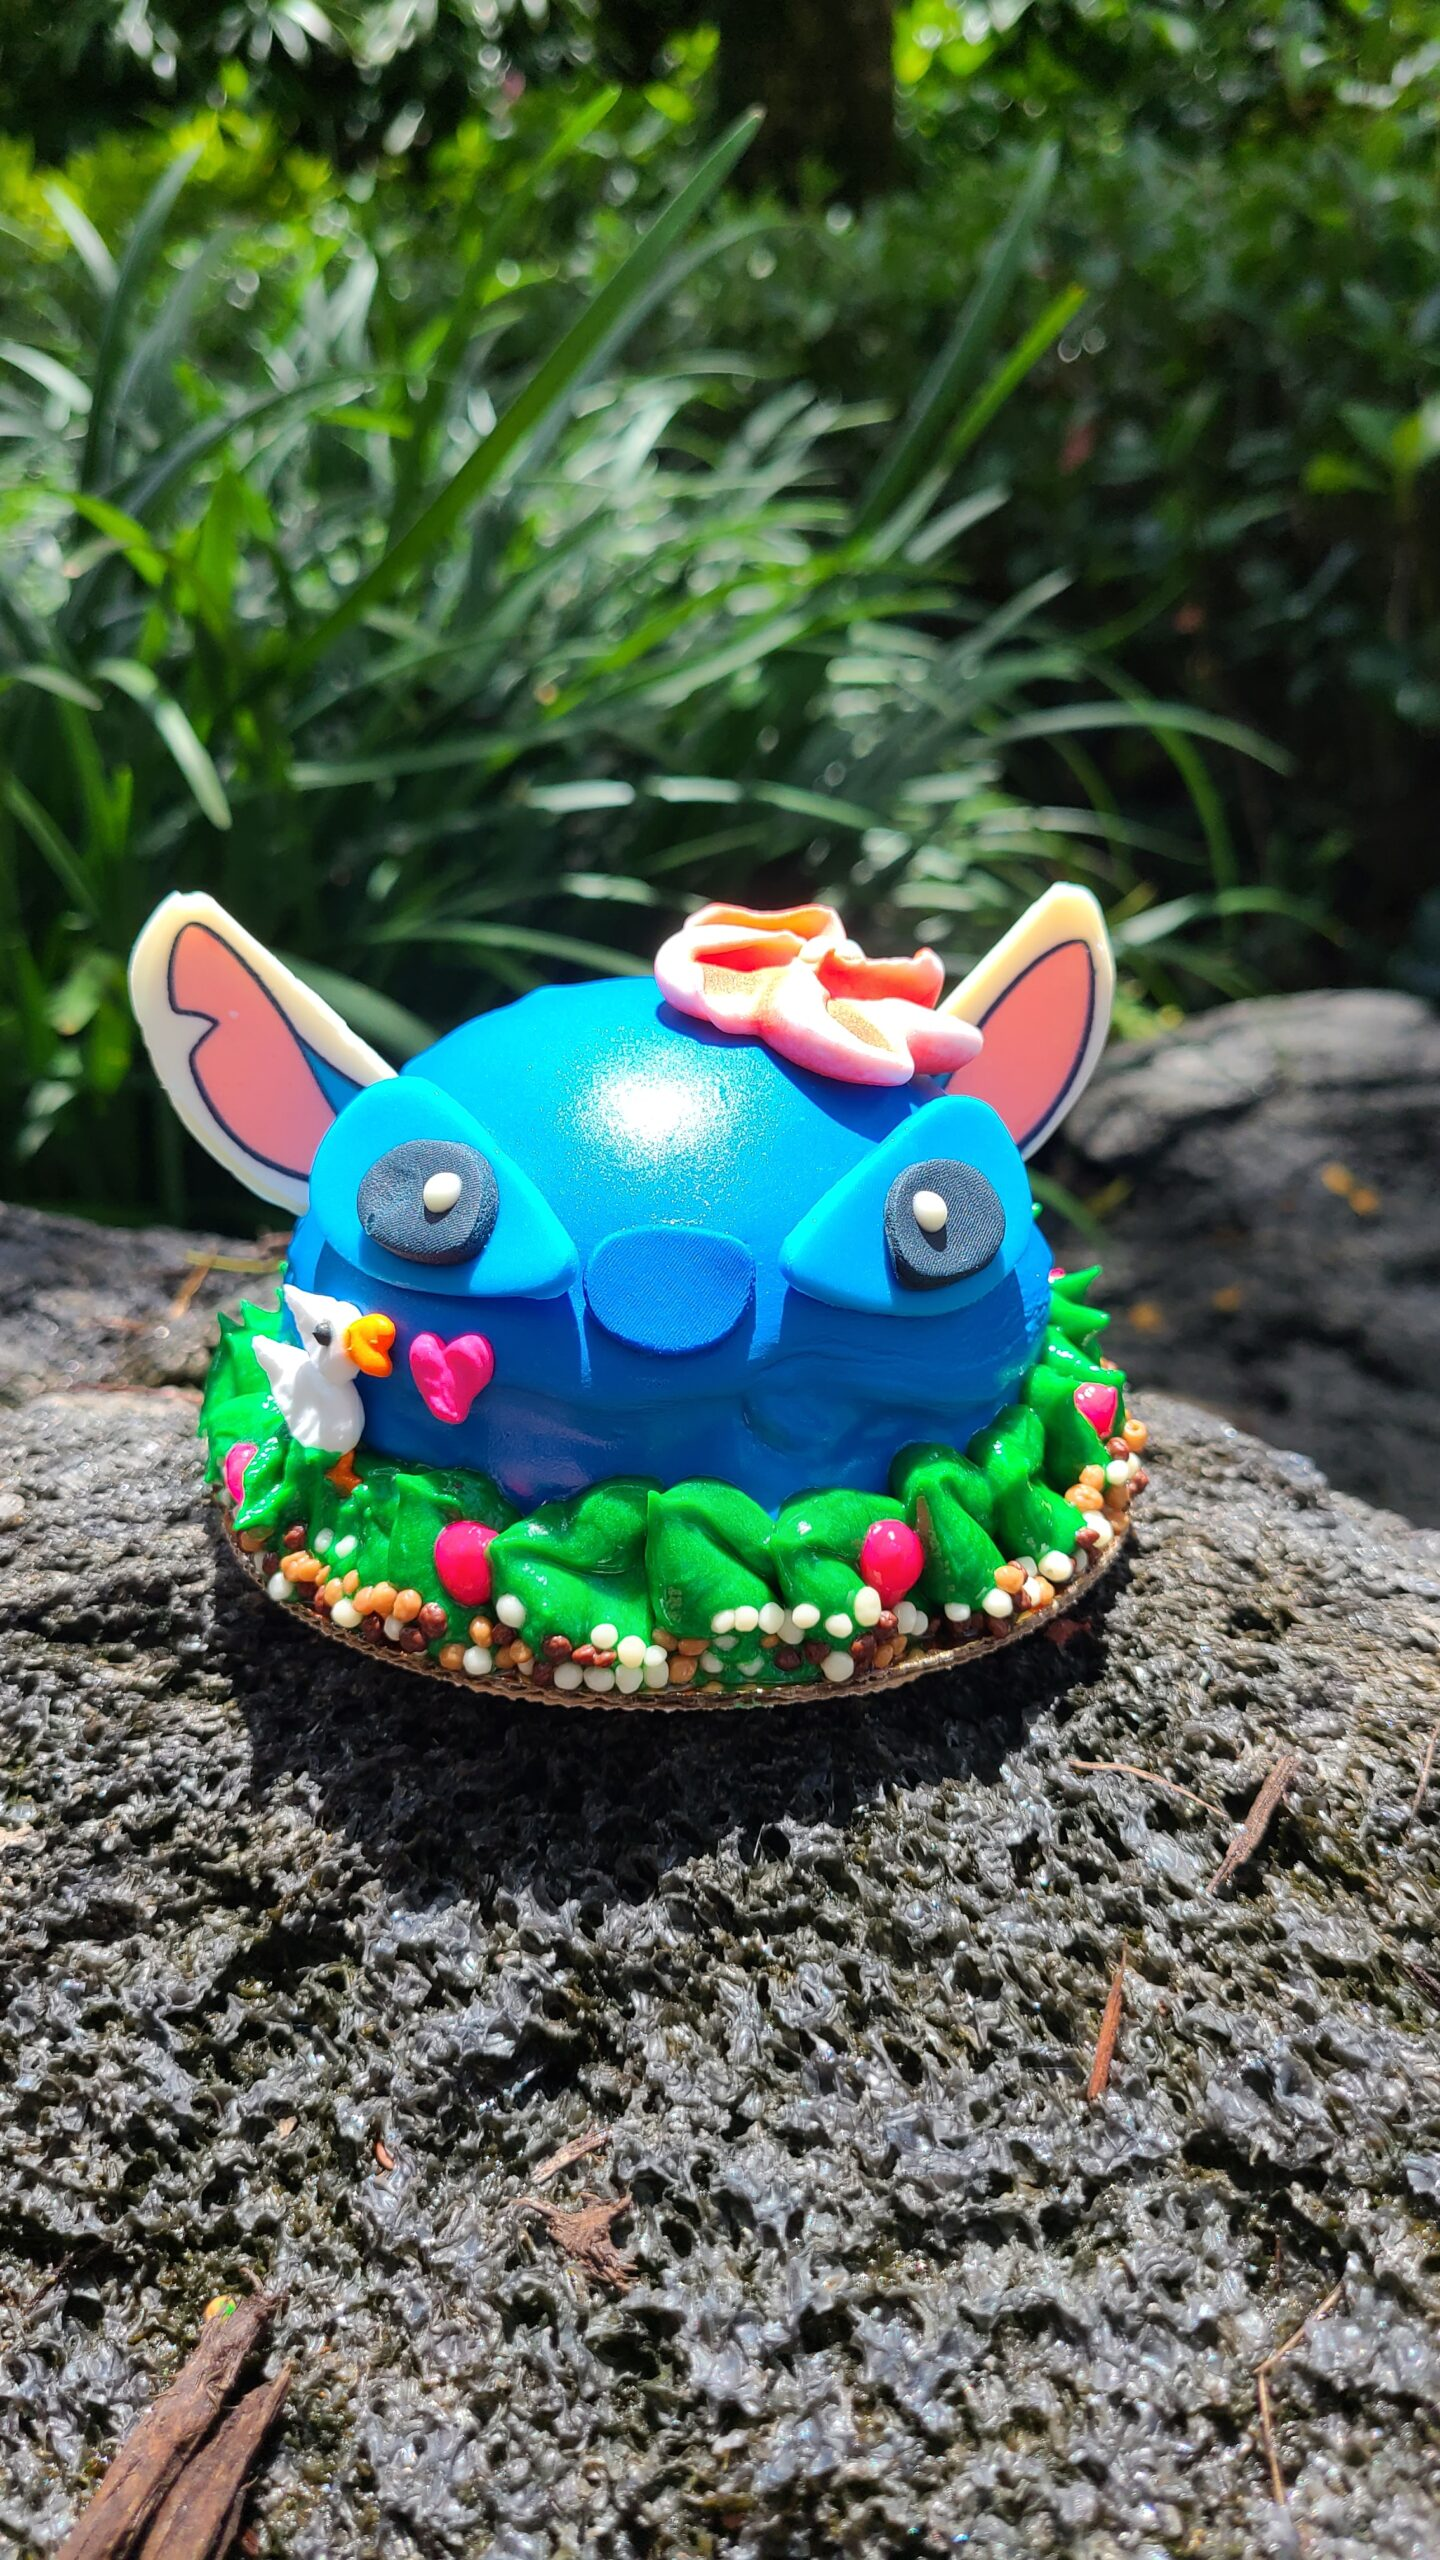 Say Aloha to the new Stitch Cupcake for 626 Day! 1